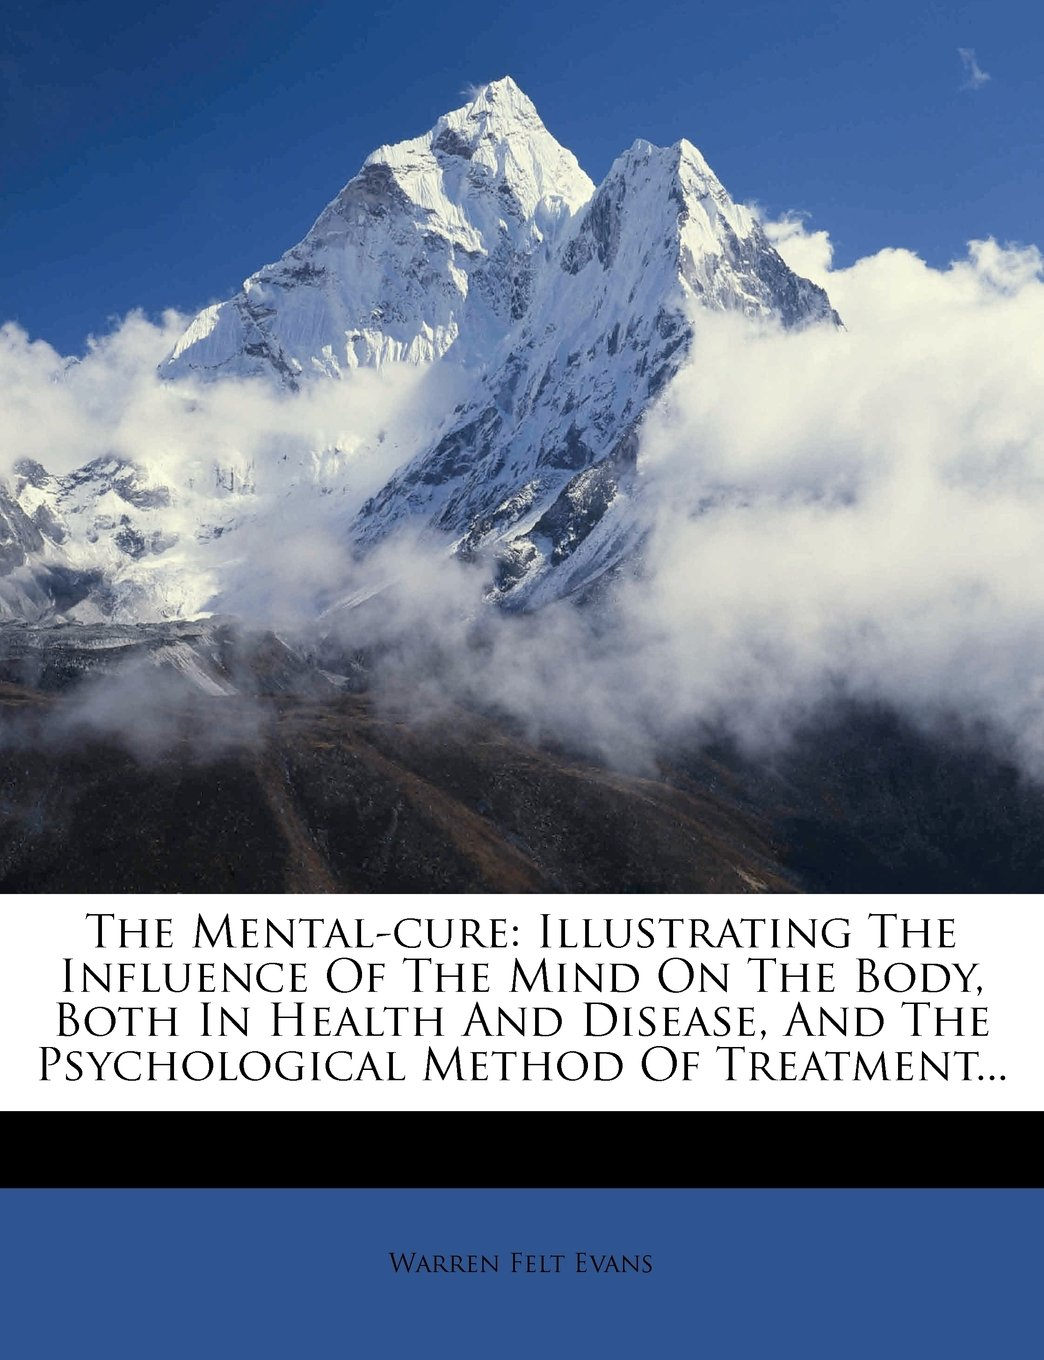 The Mental-cure: Illustrating The Influence Of The Mind On The Body, Both In Health And Disease, And The Psychological Method Of Treatment... pdf epub